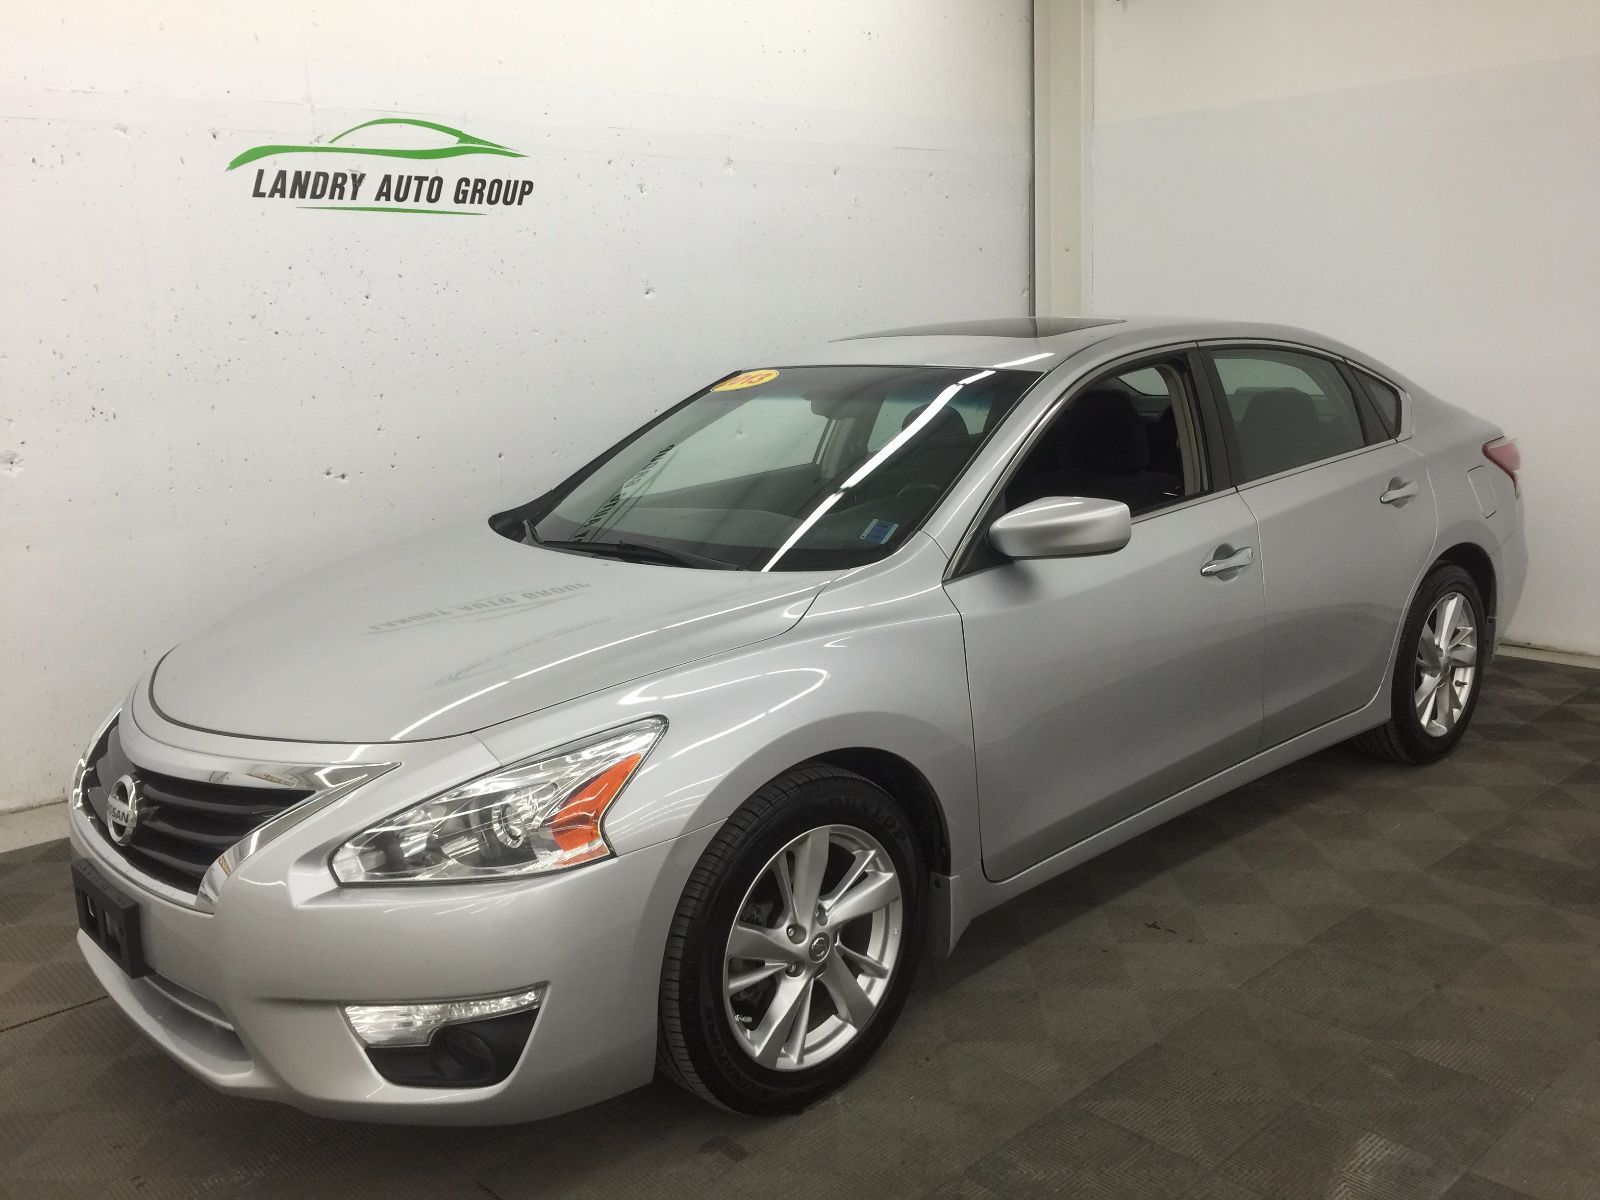 altima at for nissan copart anthony cars tx lot sale